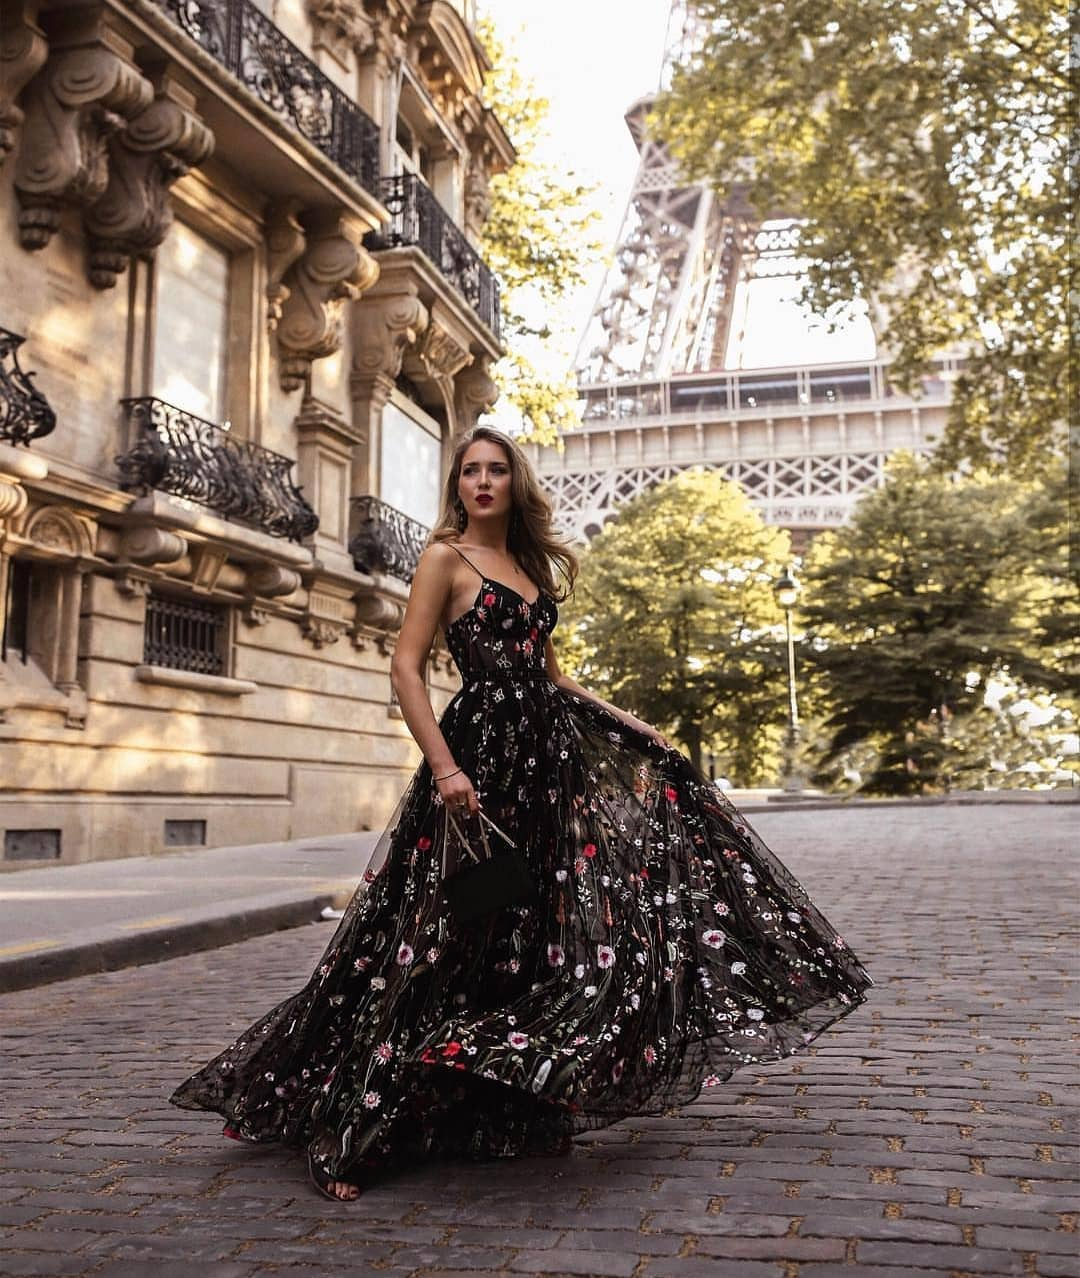 Black Floral Maxi Gown With Spaghetti Straps For Summer Paris 2019